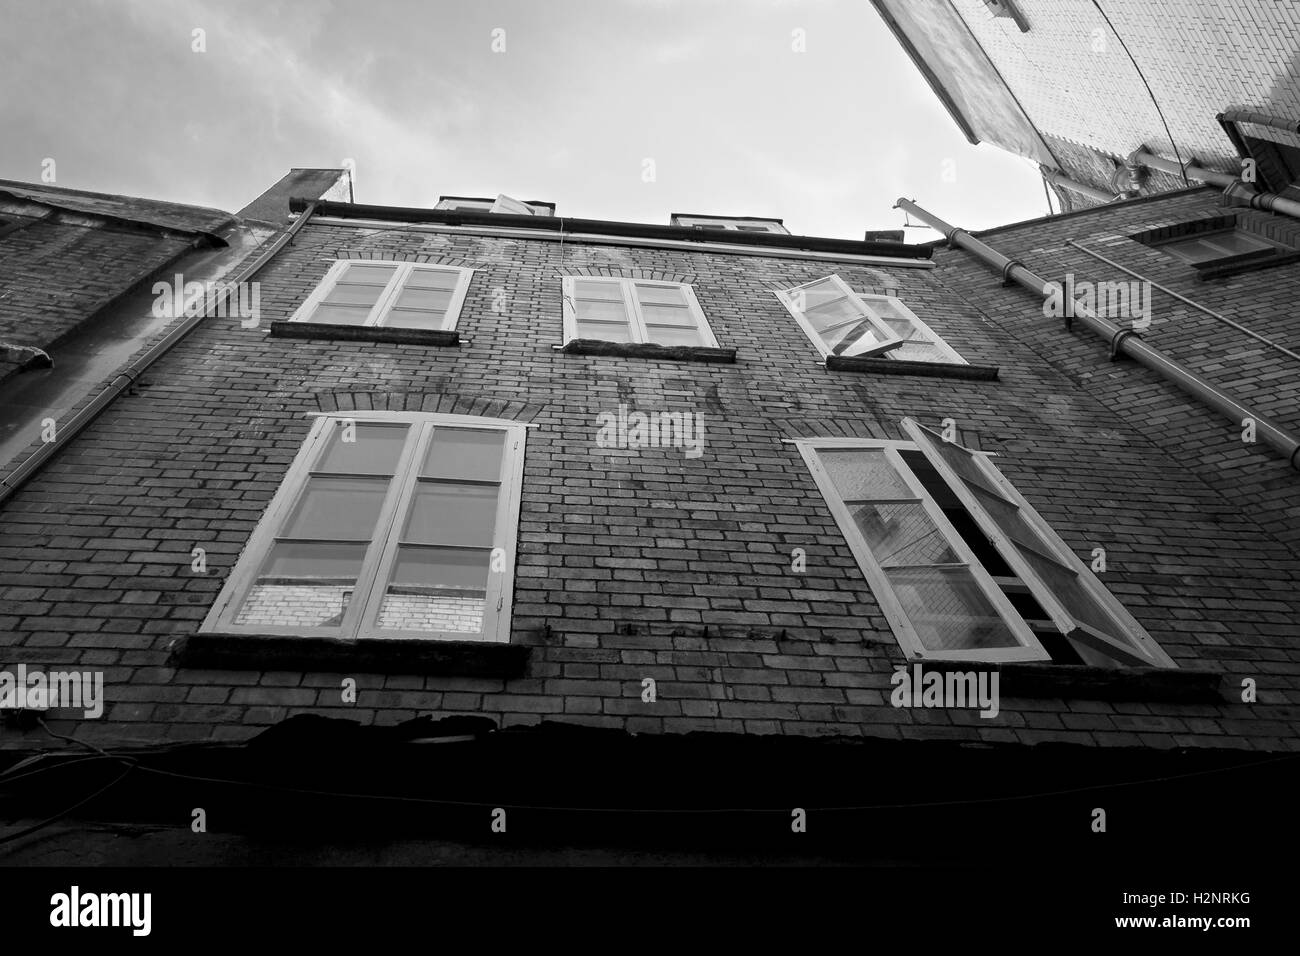 A view from below of a building in Bristol found between the alleyways. - Stock Image